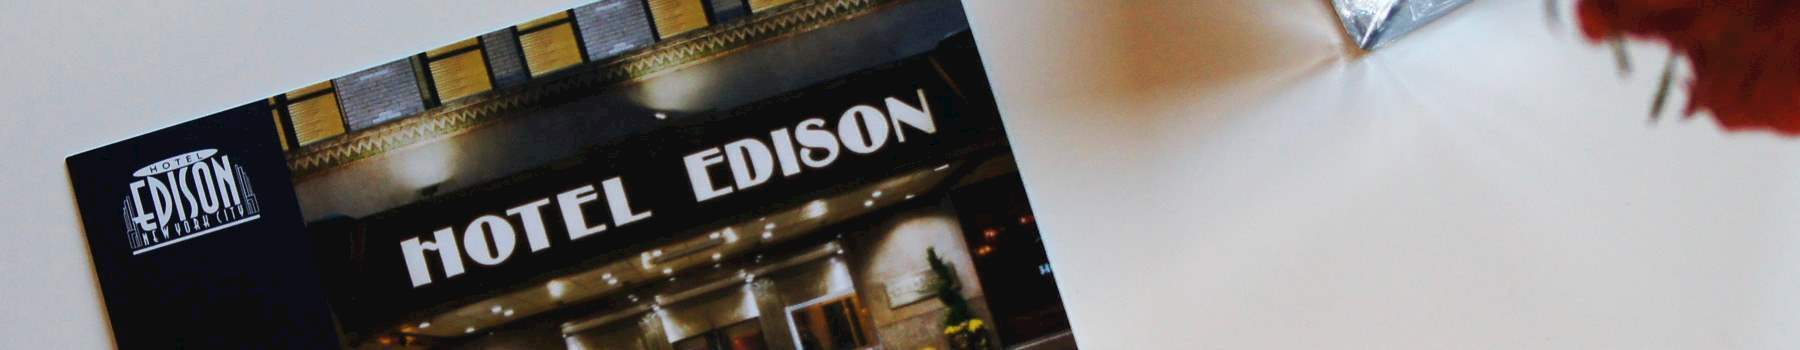 Email offer of Hotel Edison Newyork